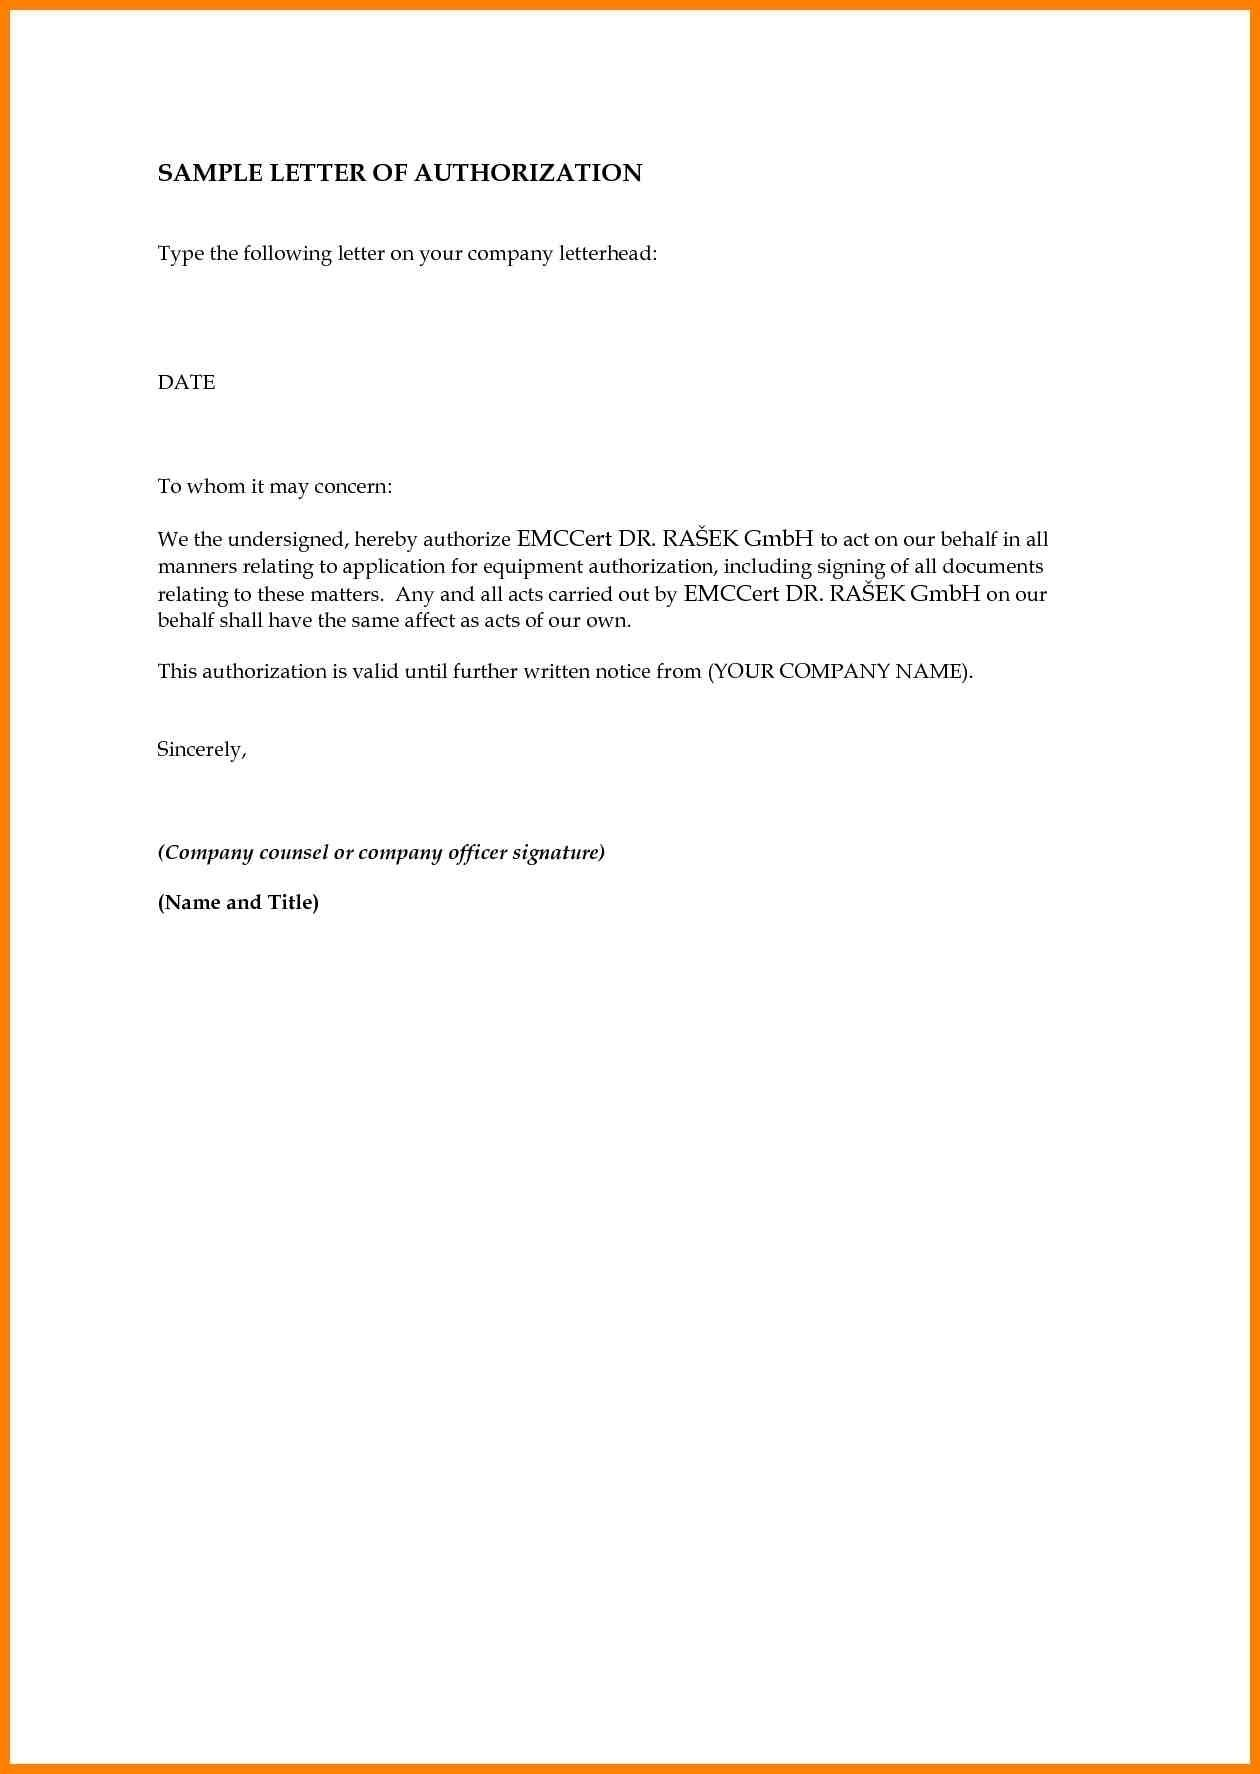 Authorization Letter To Sign On Behalf Of Company from dailyroabox.com